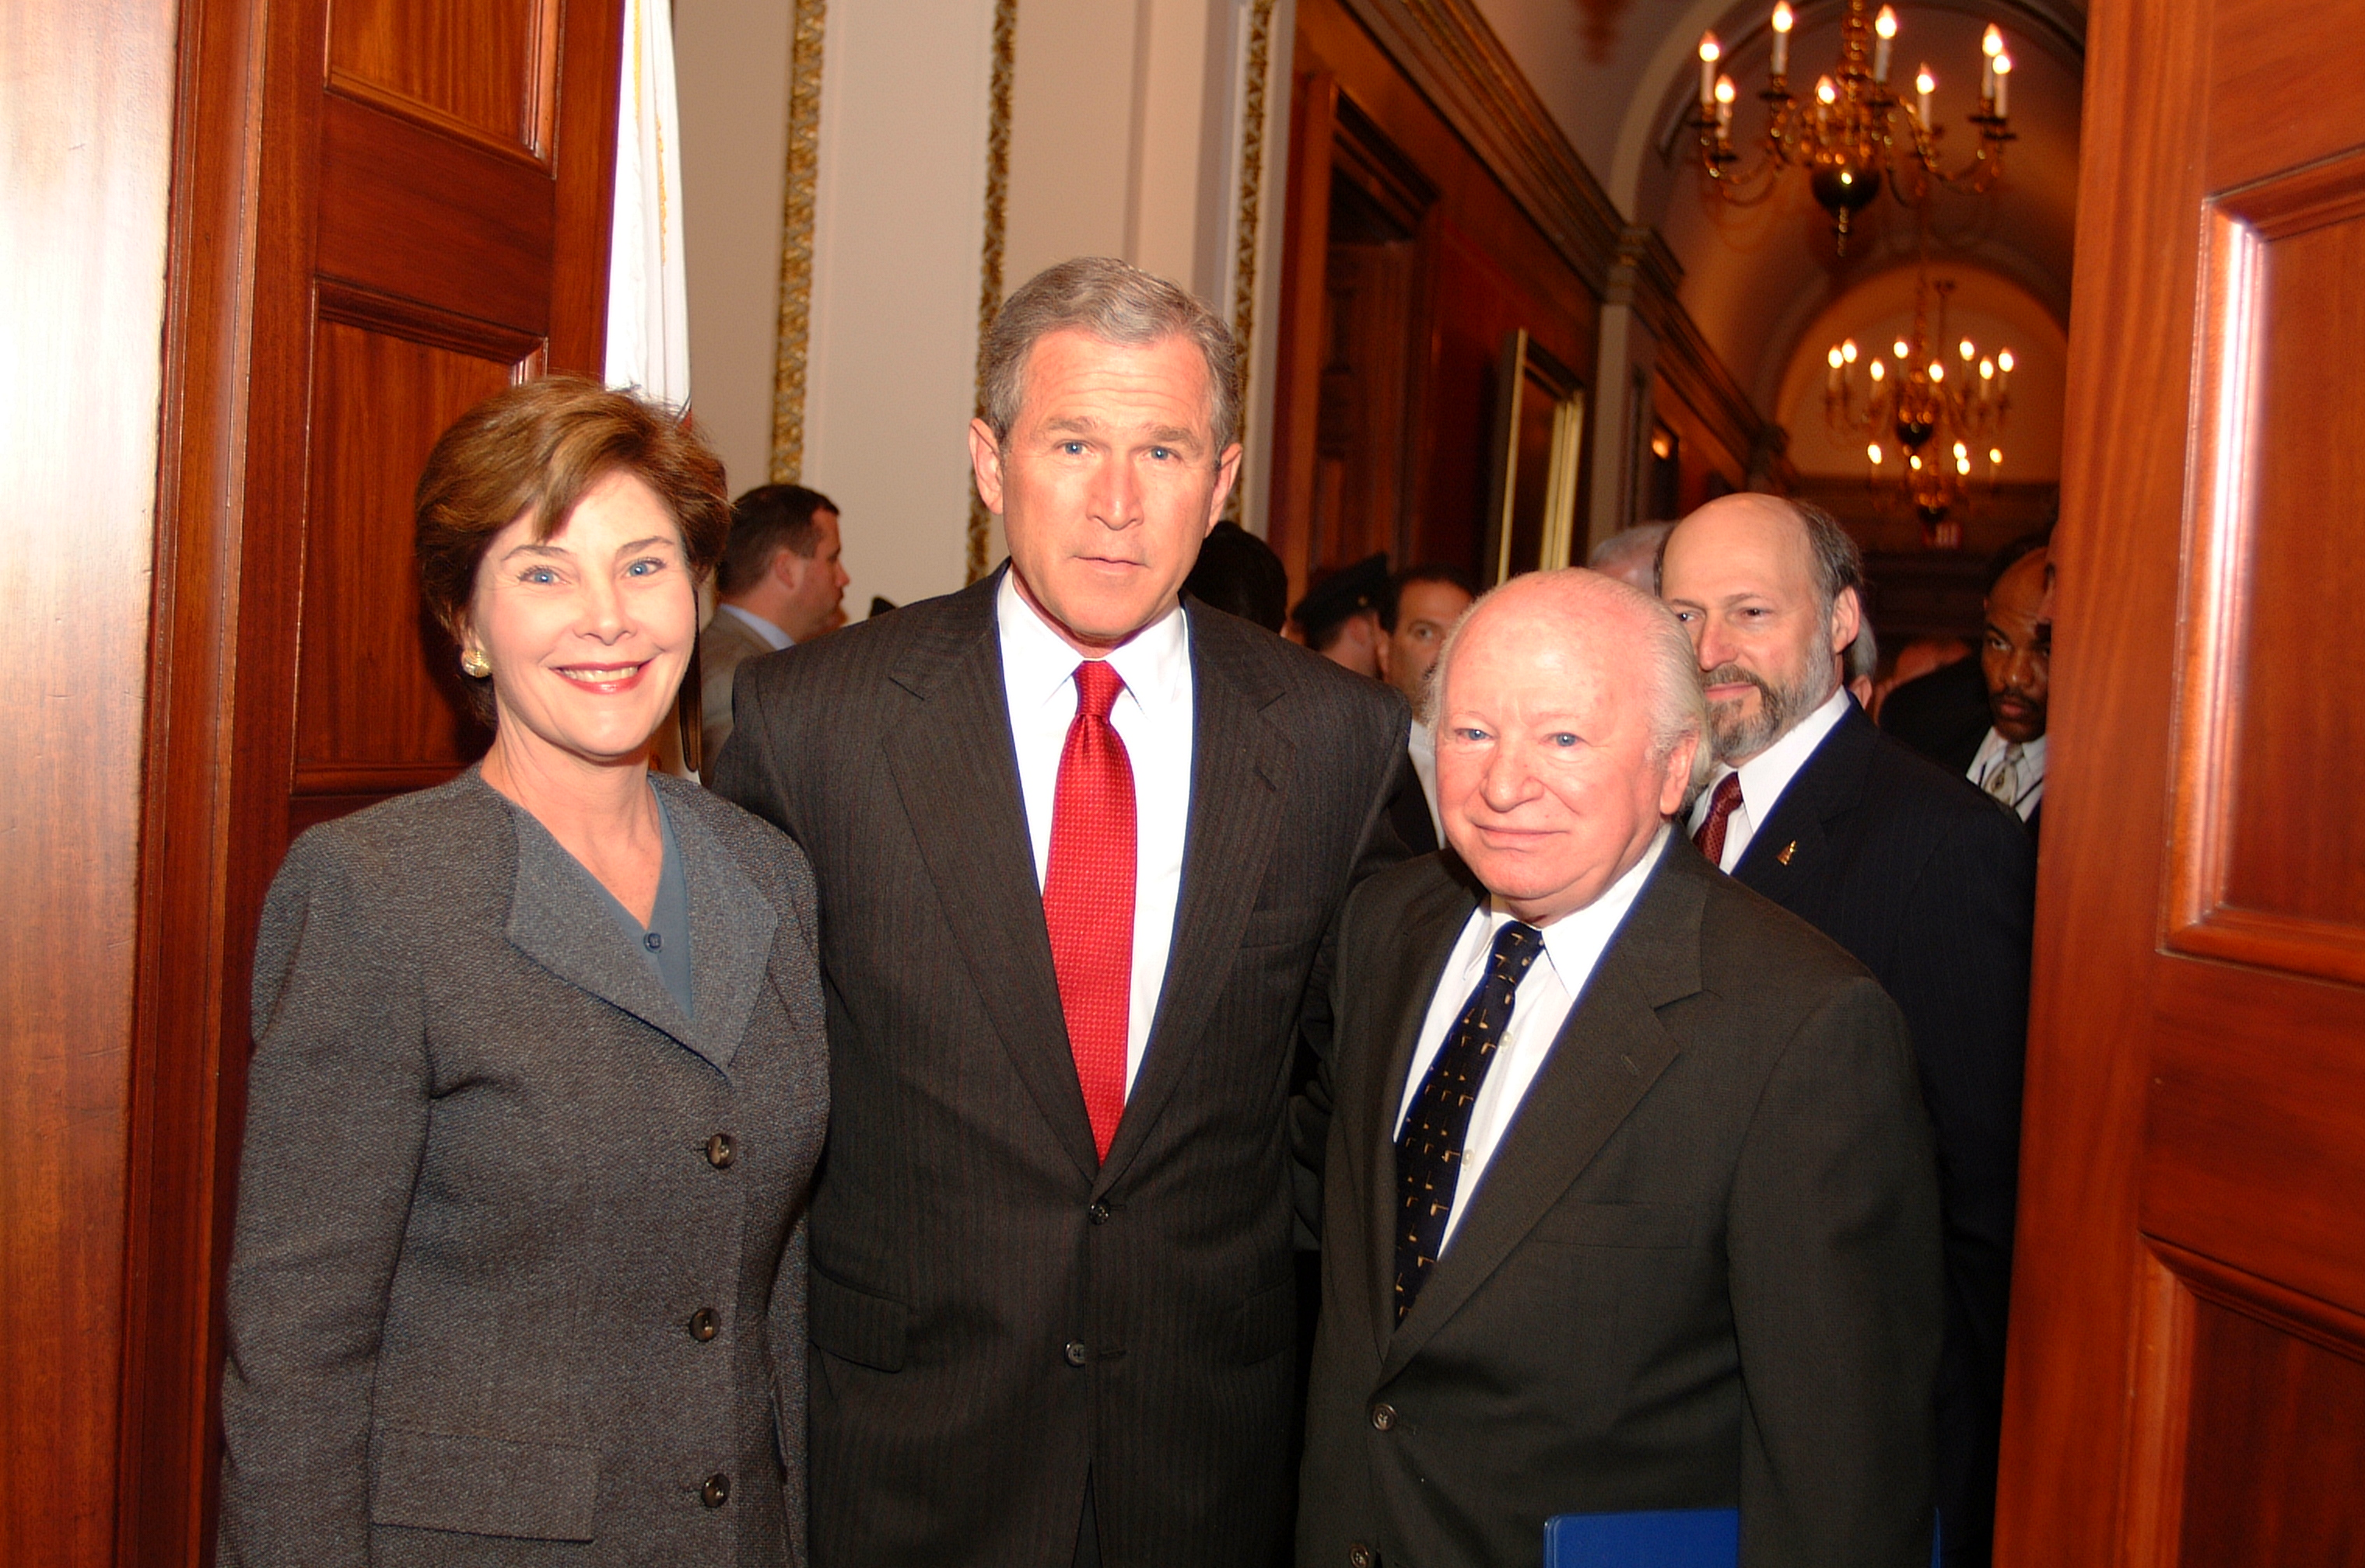 Laura Bush, George Bush, and Benjamin Meed during the Days of Remembrance 2001.